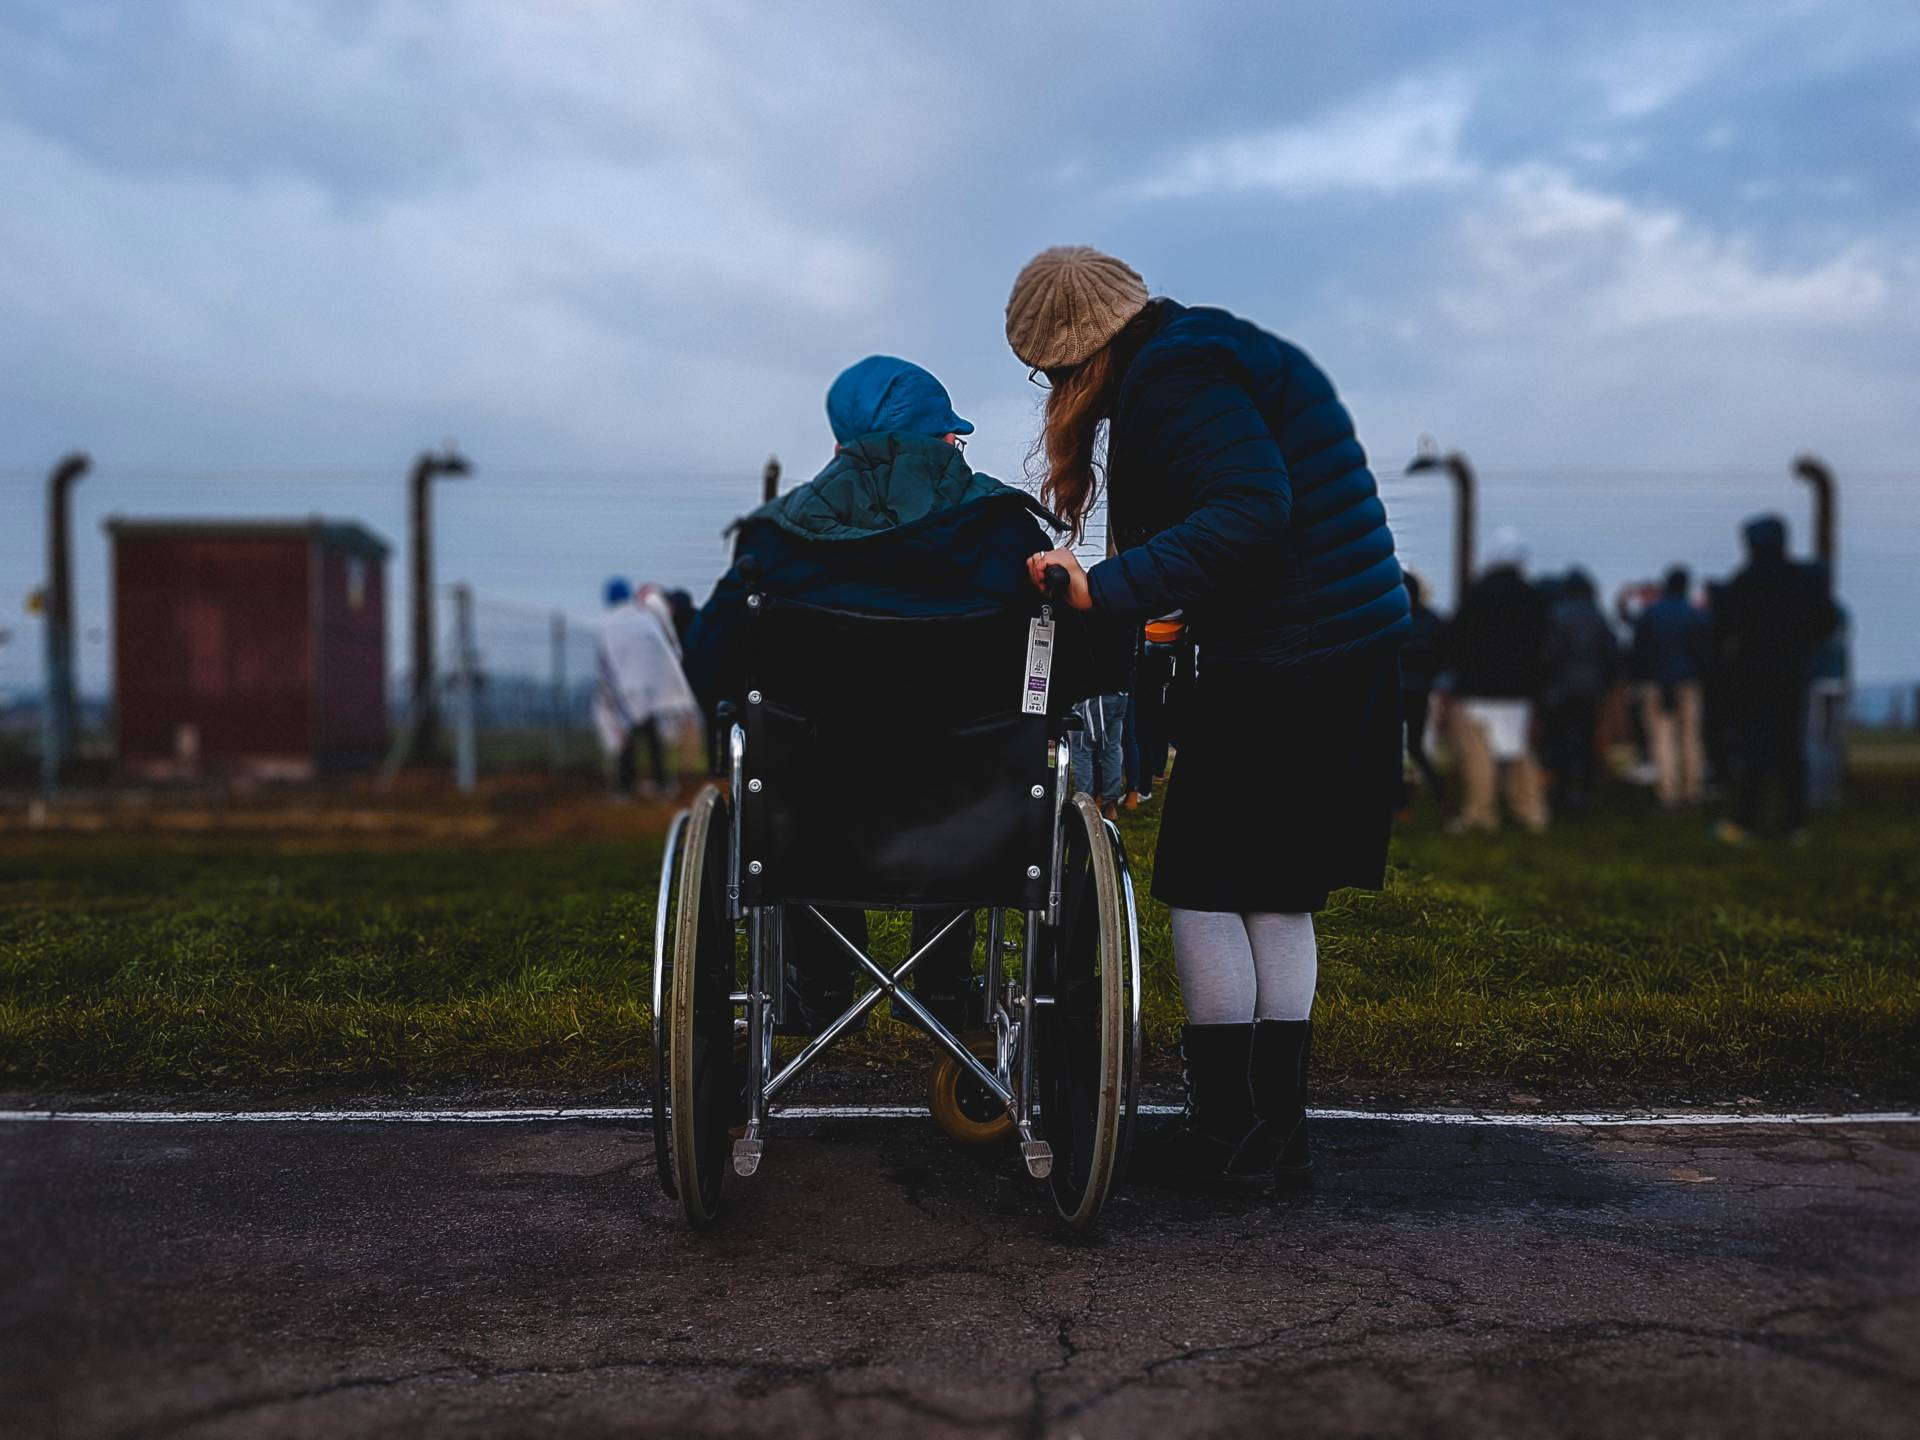 Ways to Cope with an Elderly Relative's Care Needs